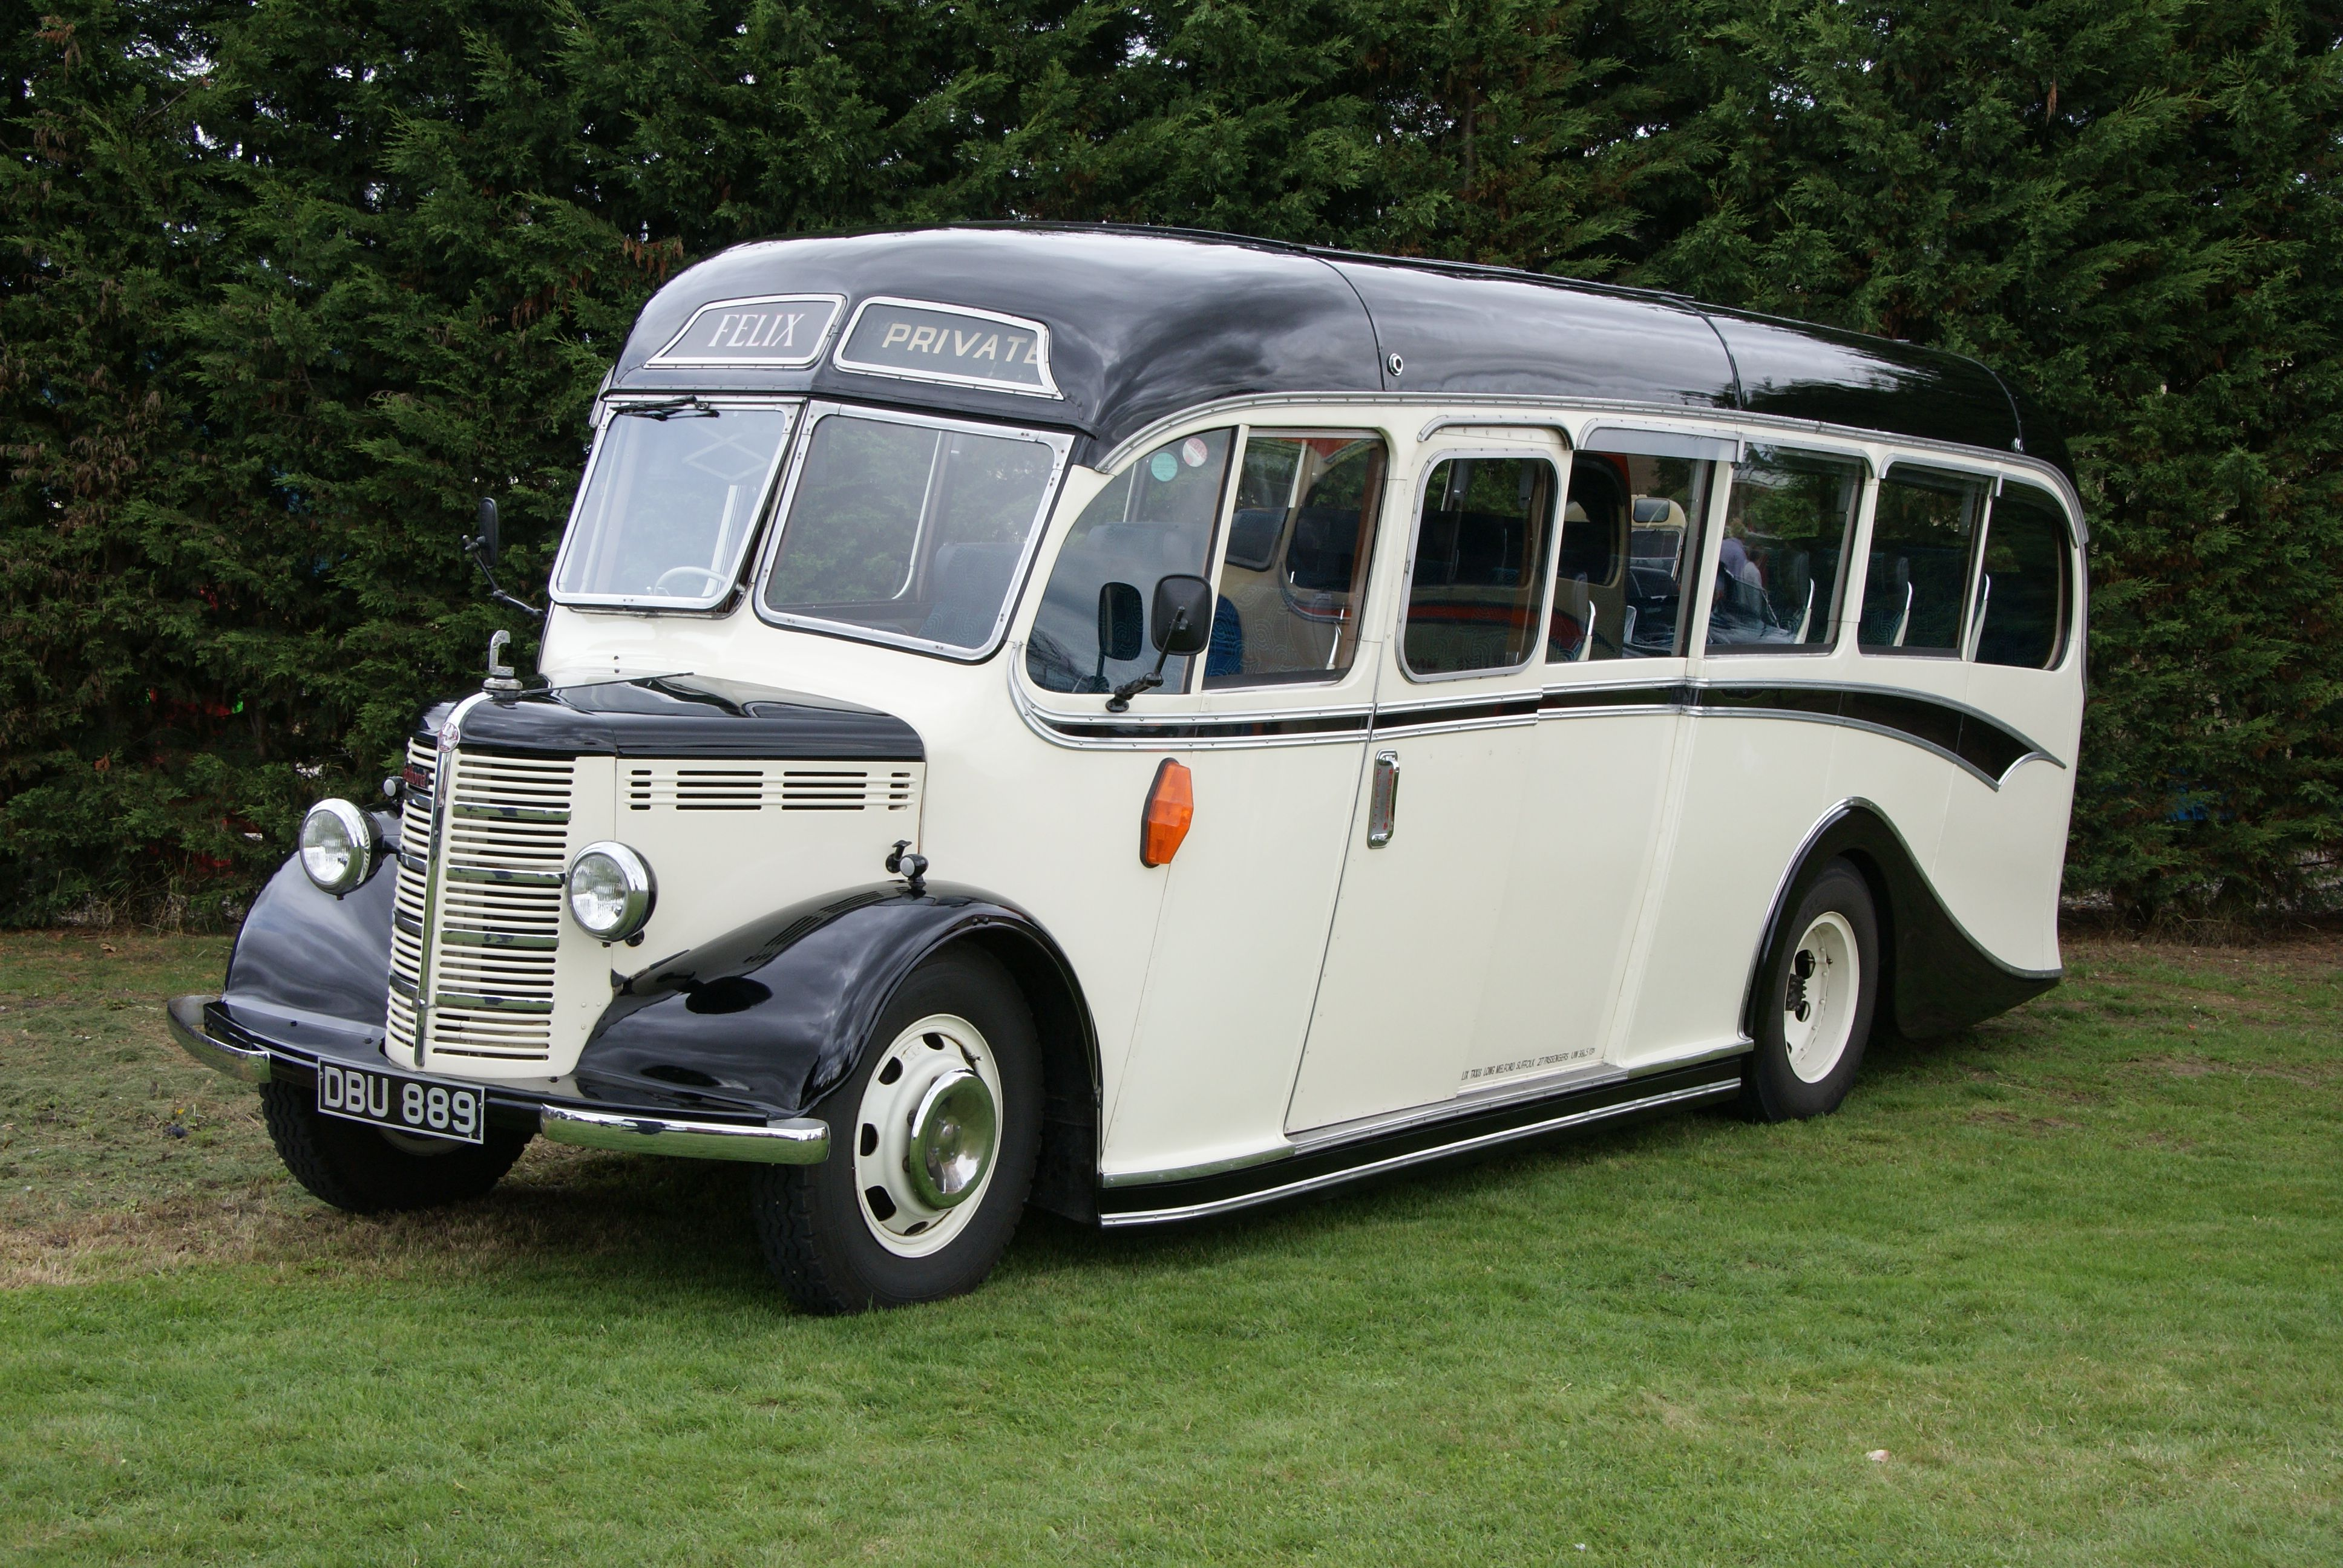 BEDFORD Vehicles cars, buses, vans and trucks England UK ...